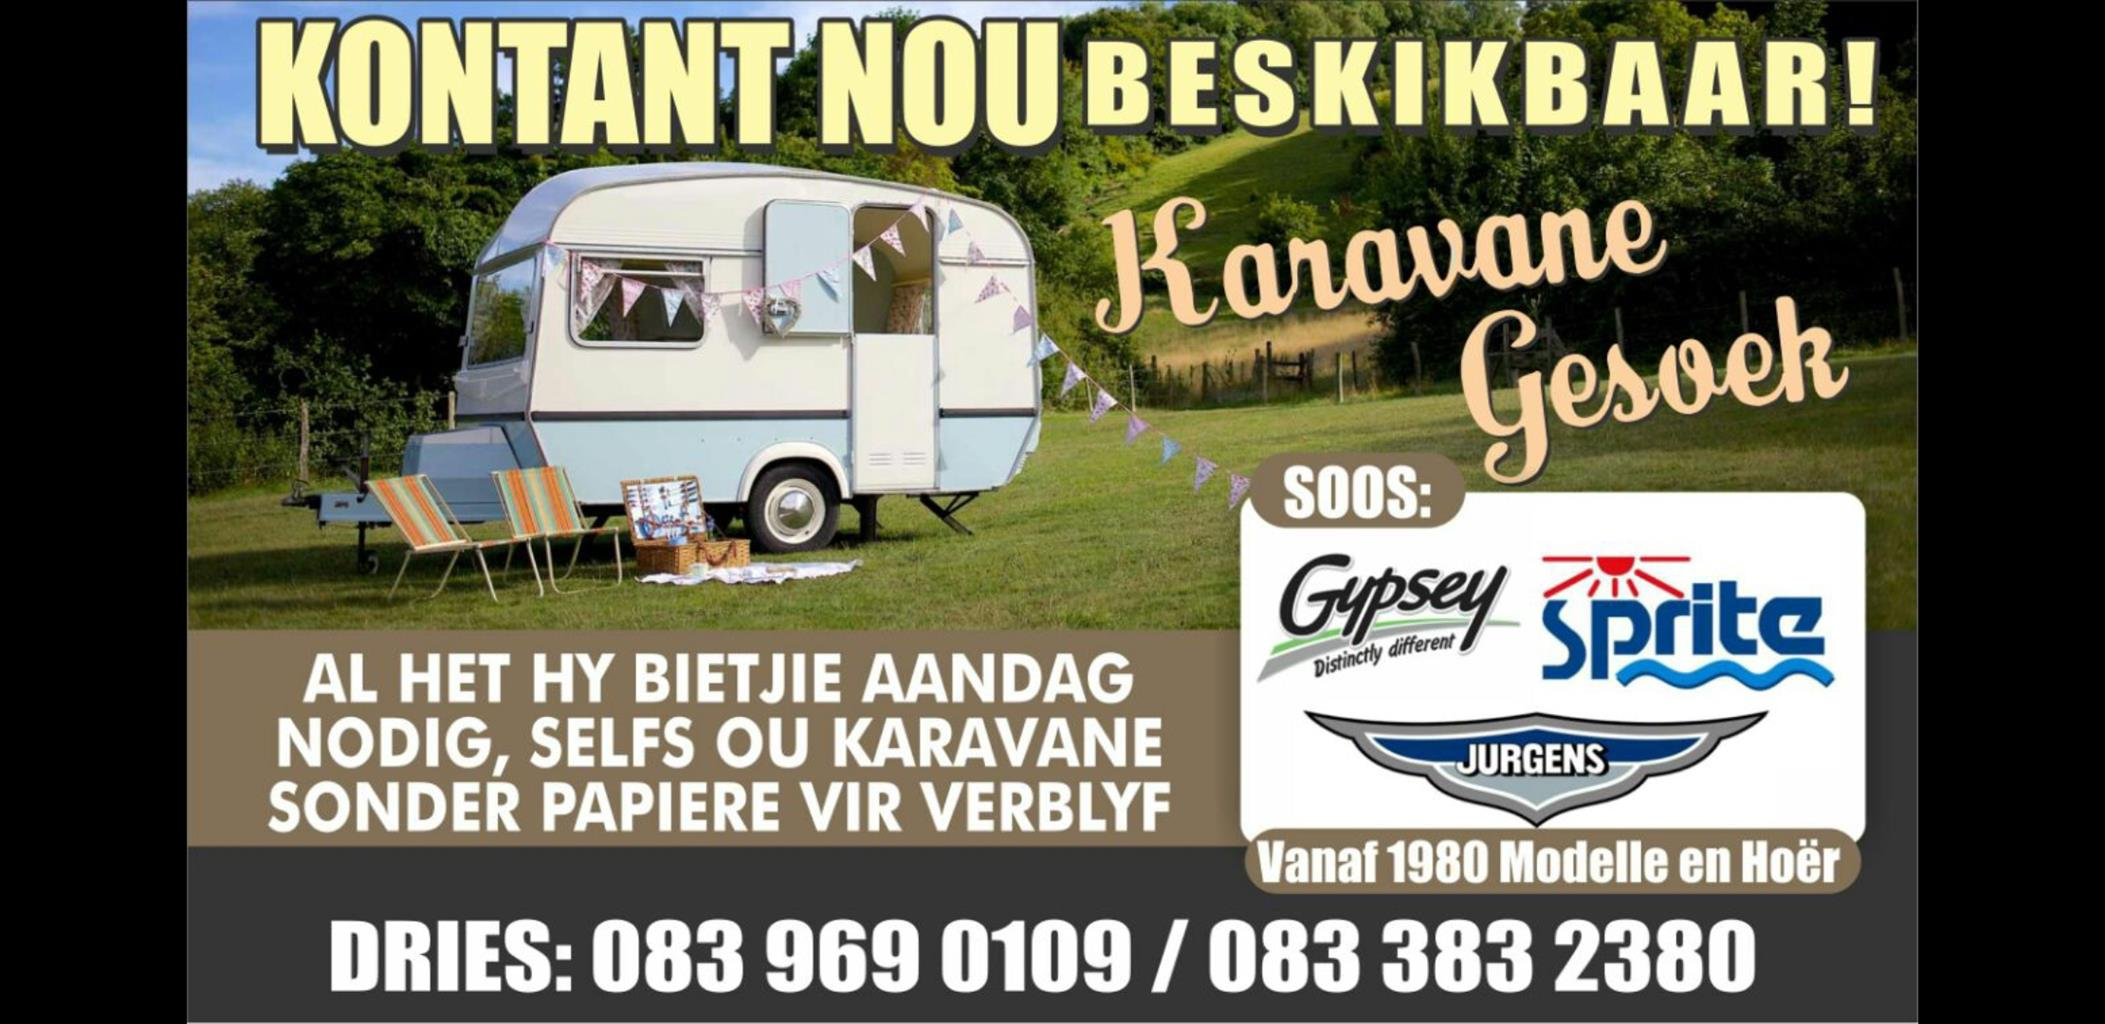 We buy caravans cash like Sprite,Jurgens and Gypsey from 1980 models to new,even if in need of attention.